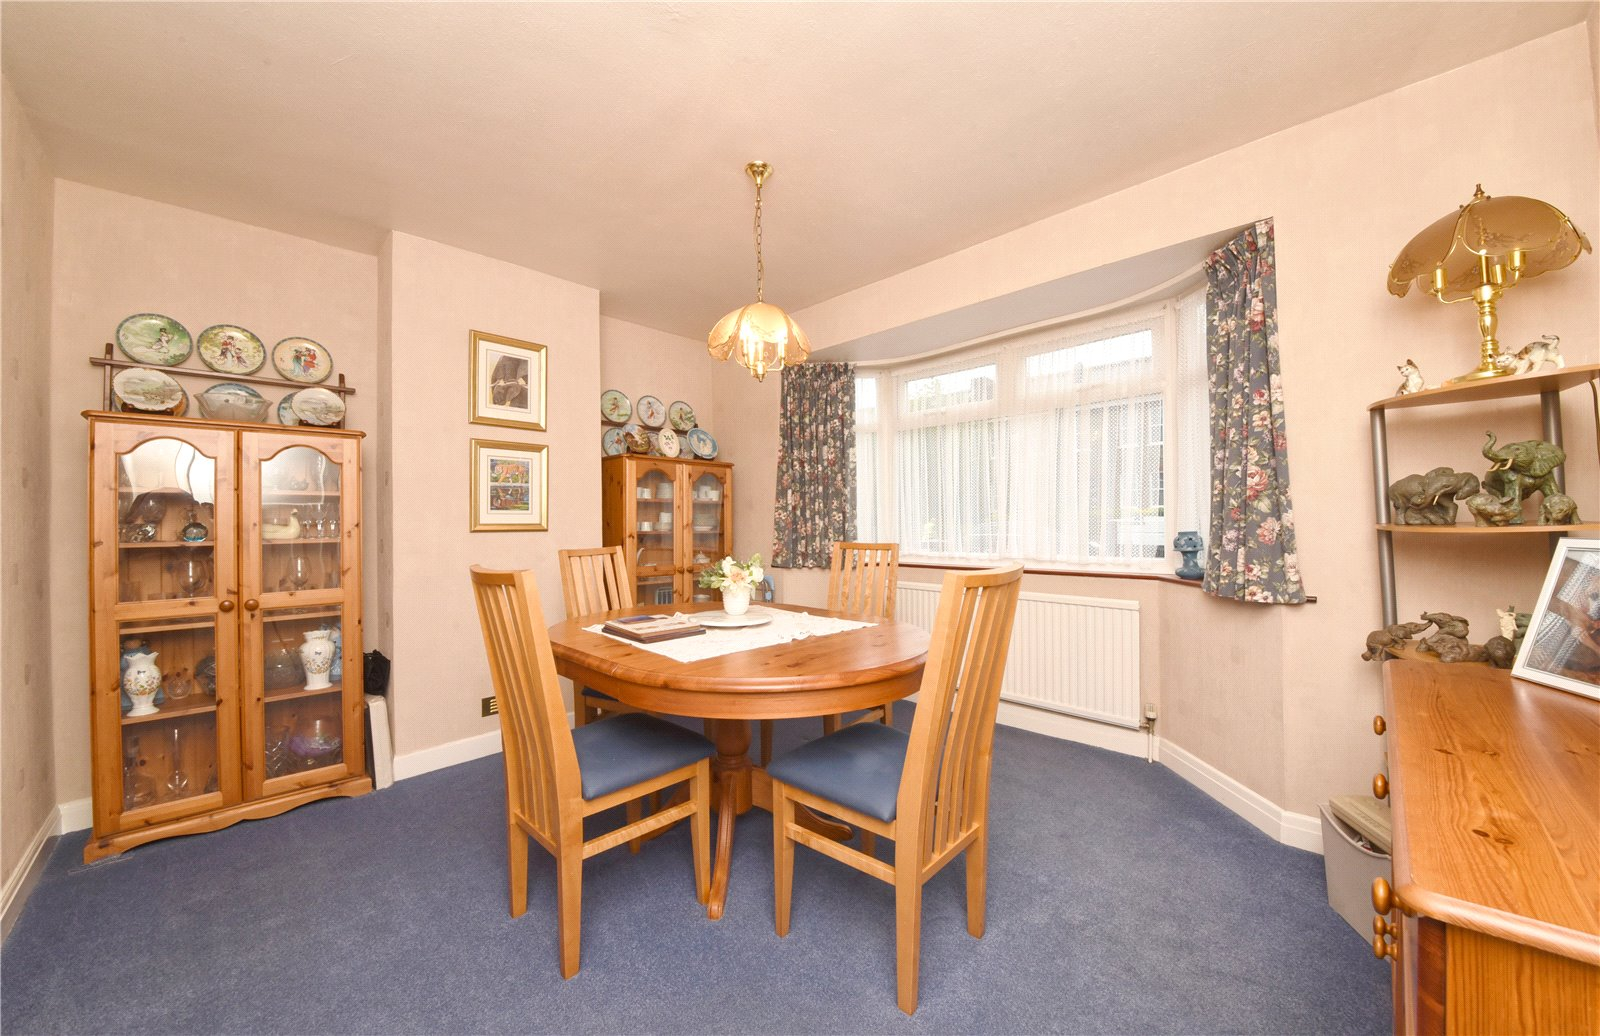 3 bed house for sale in Whetstone, N20 0DG 5